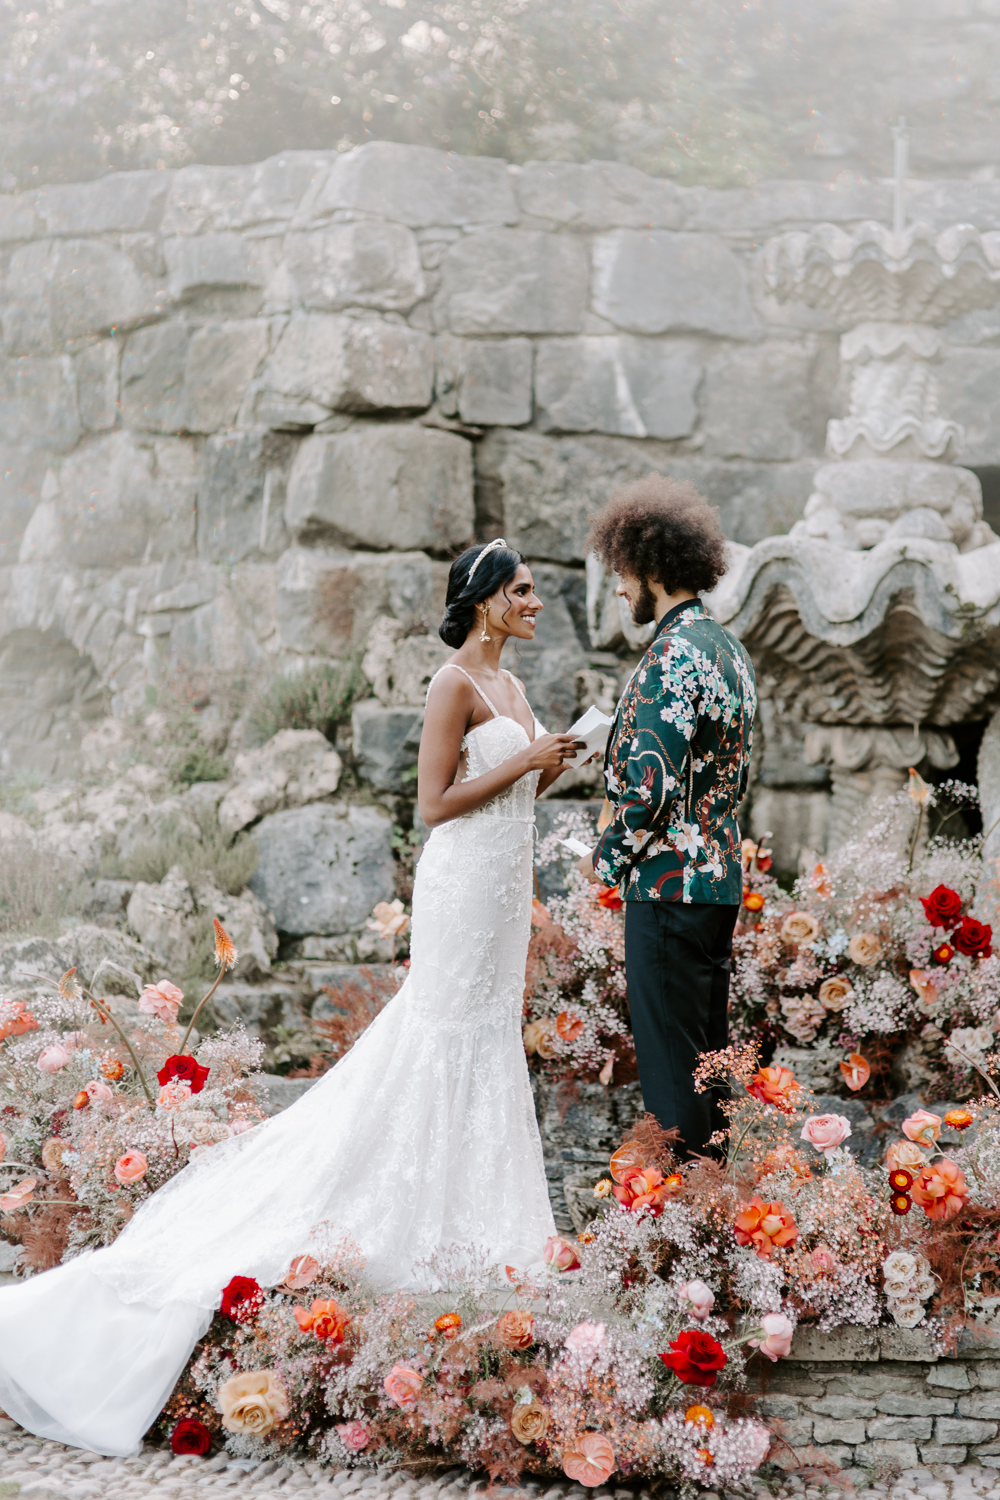 Shropshire outdoor wedding ceremony with floral installation